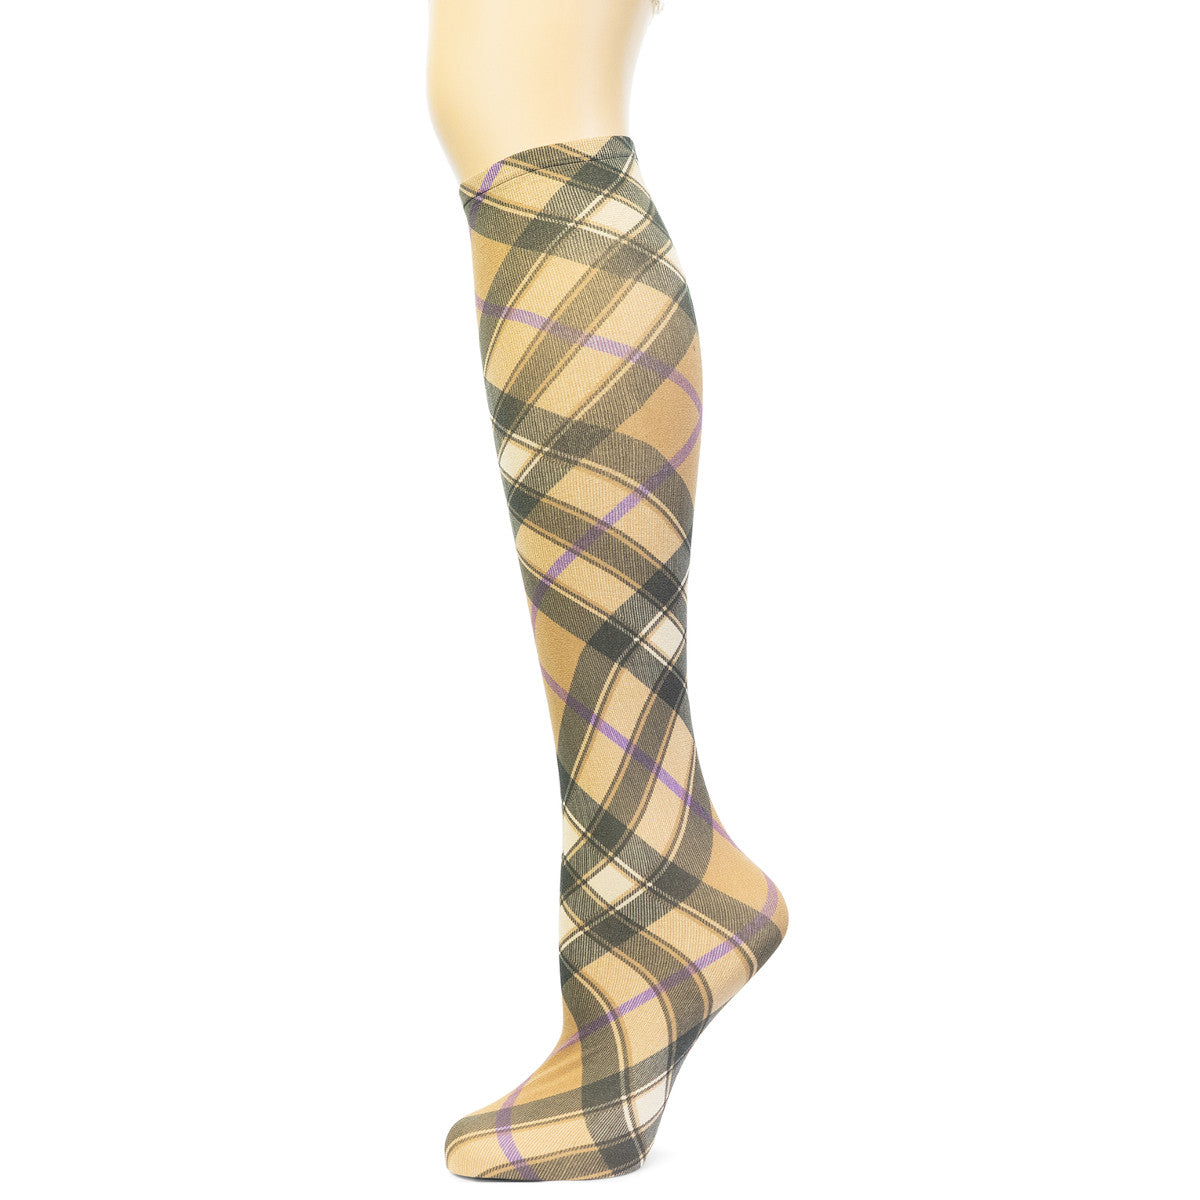 Sox Trot Women's Bias Plaid Knee High Socks